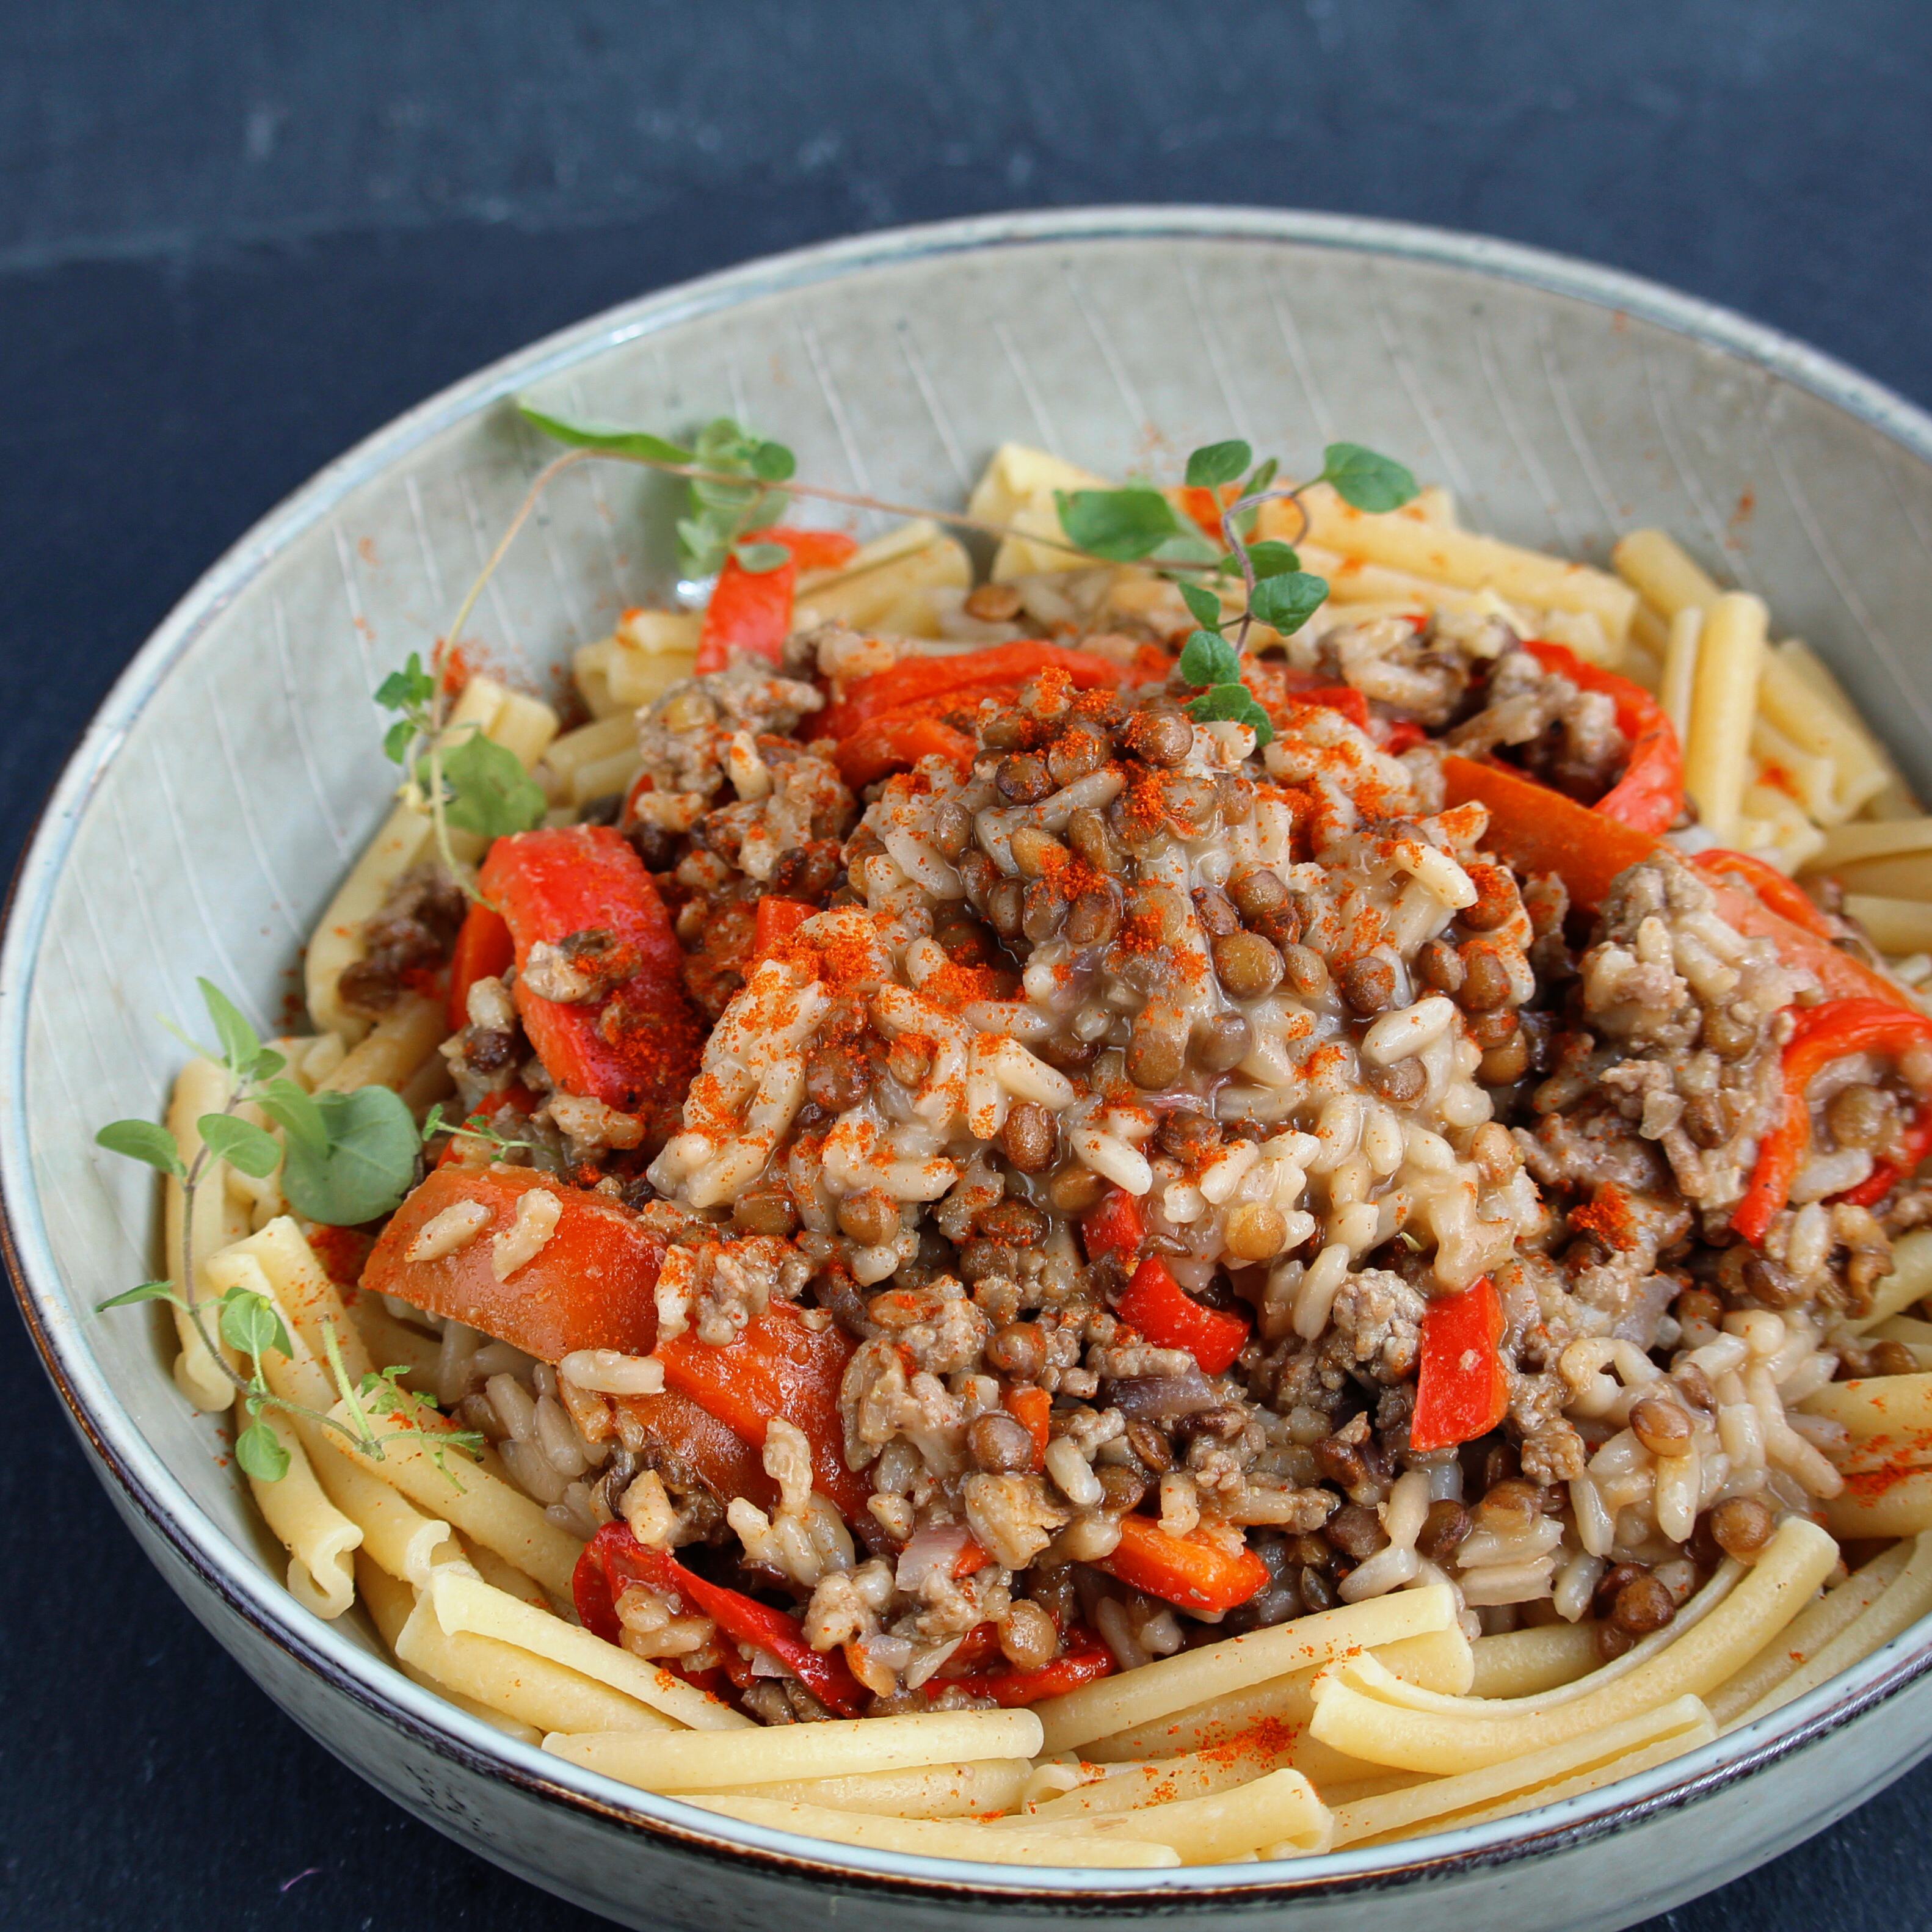 Lentils with Ground Beef and Rice